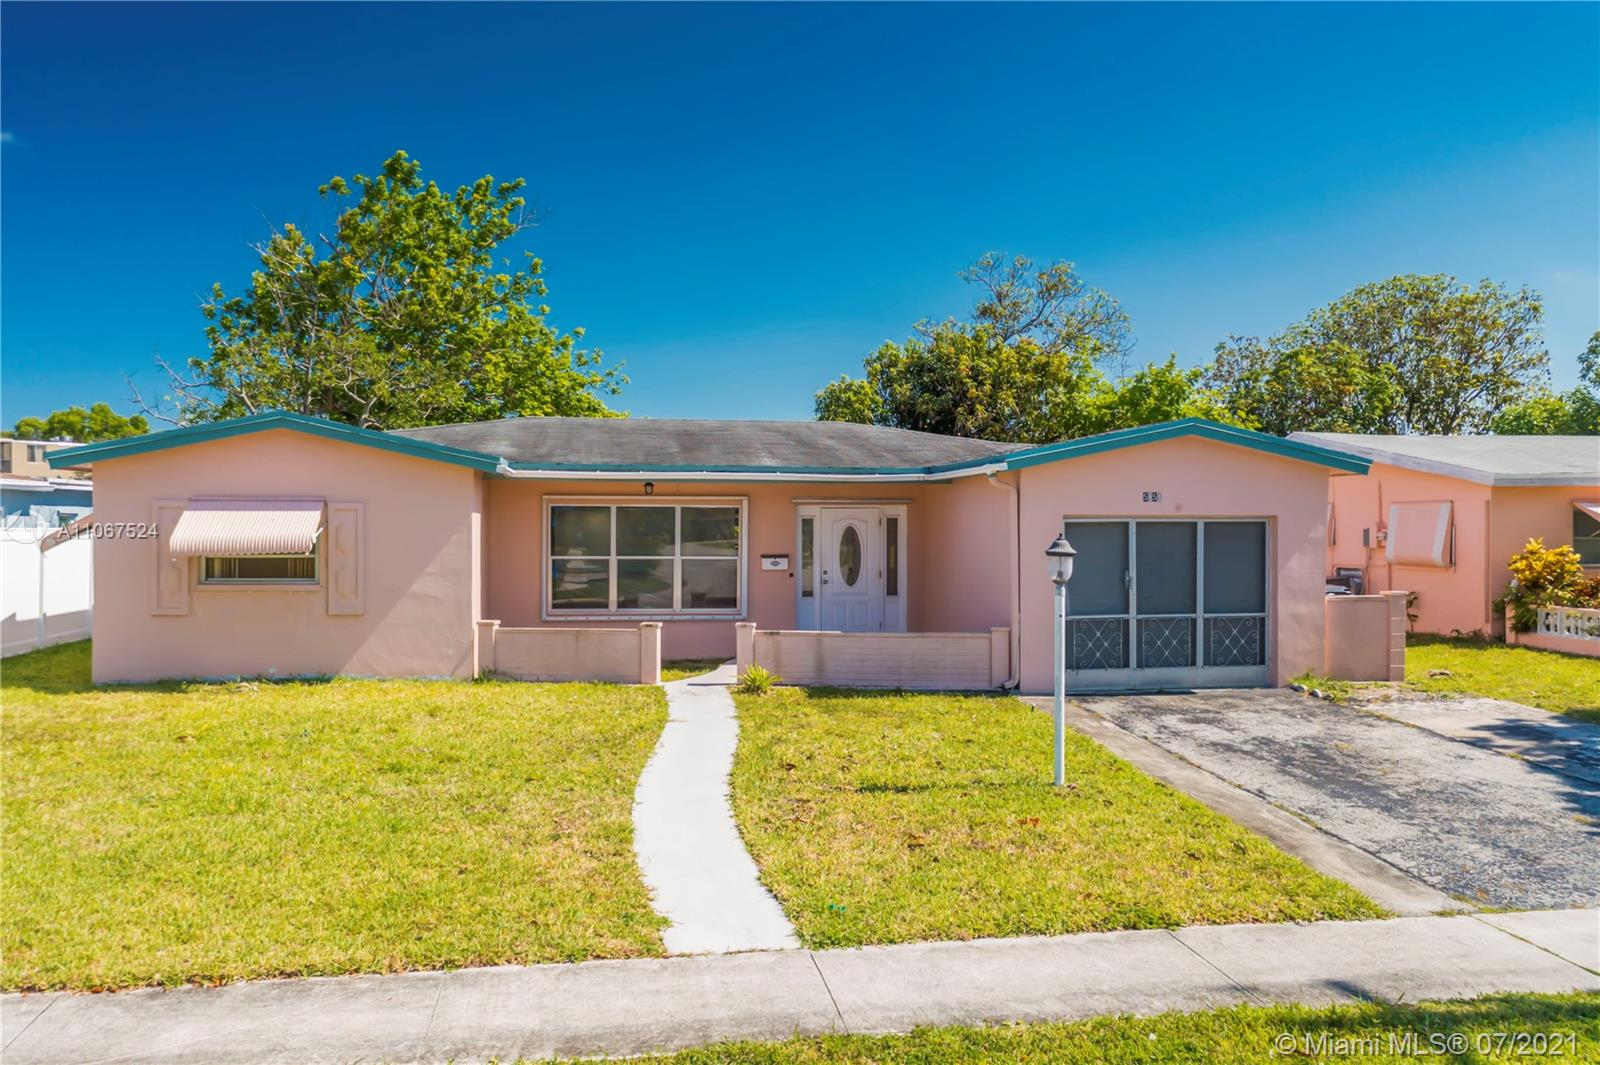 5050 NW 39th St, Lauderdale Lakes, Florida 33319